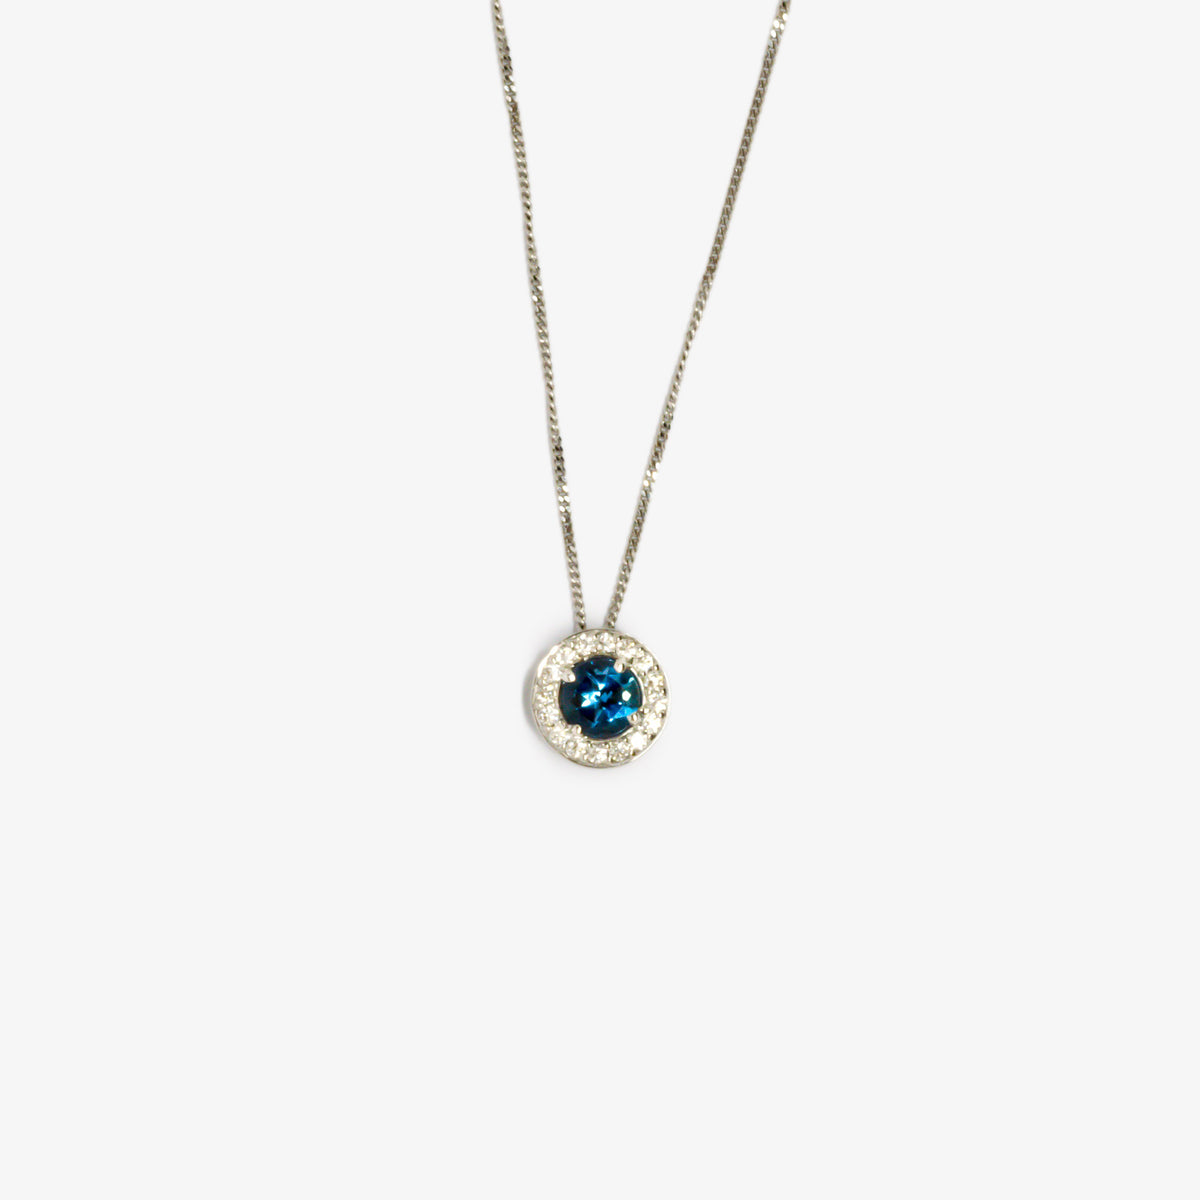 Blue aquamarine and diamond cluster pendant necklace in white gold close-up